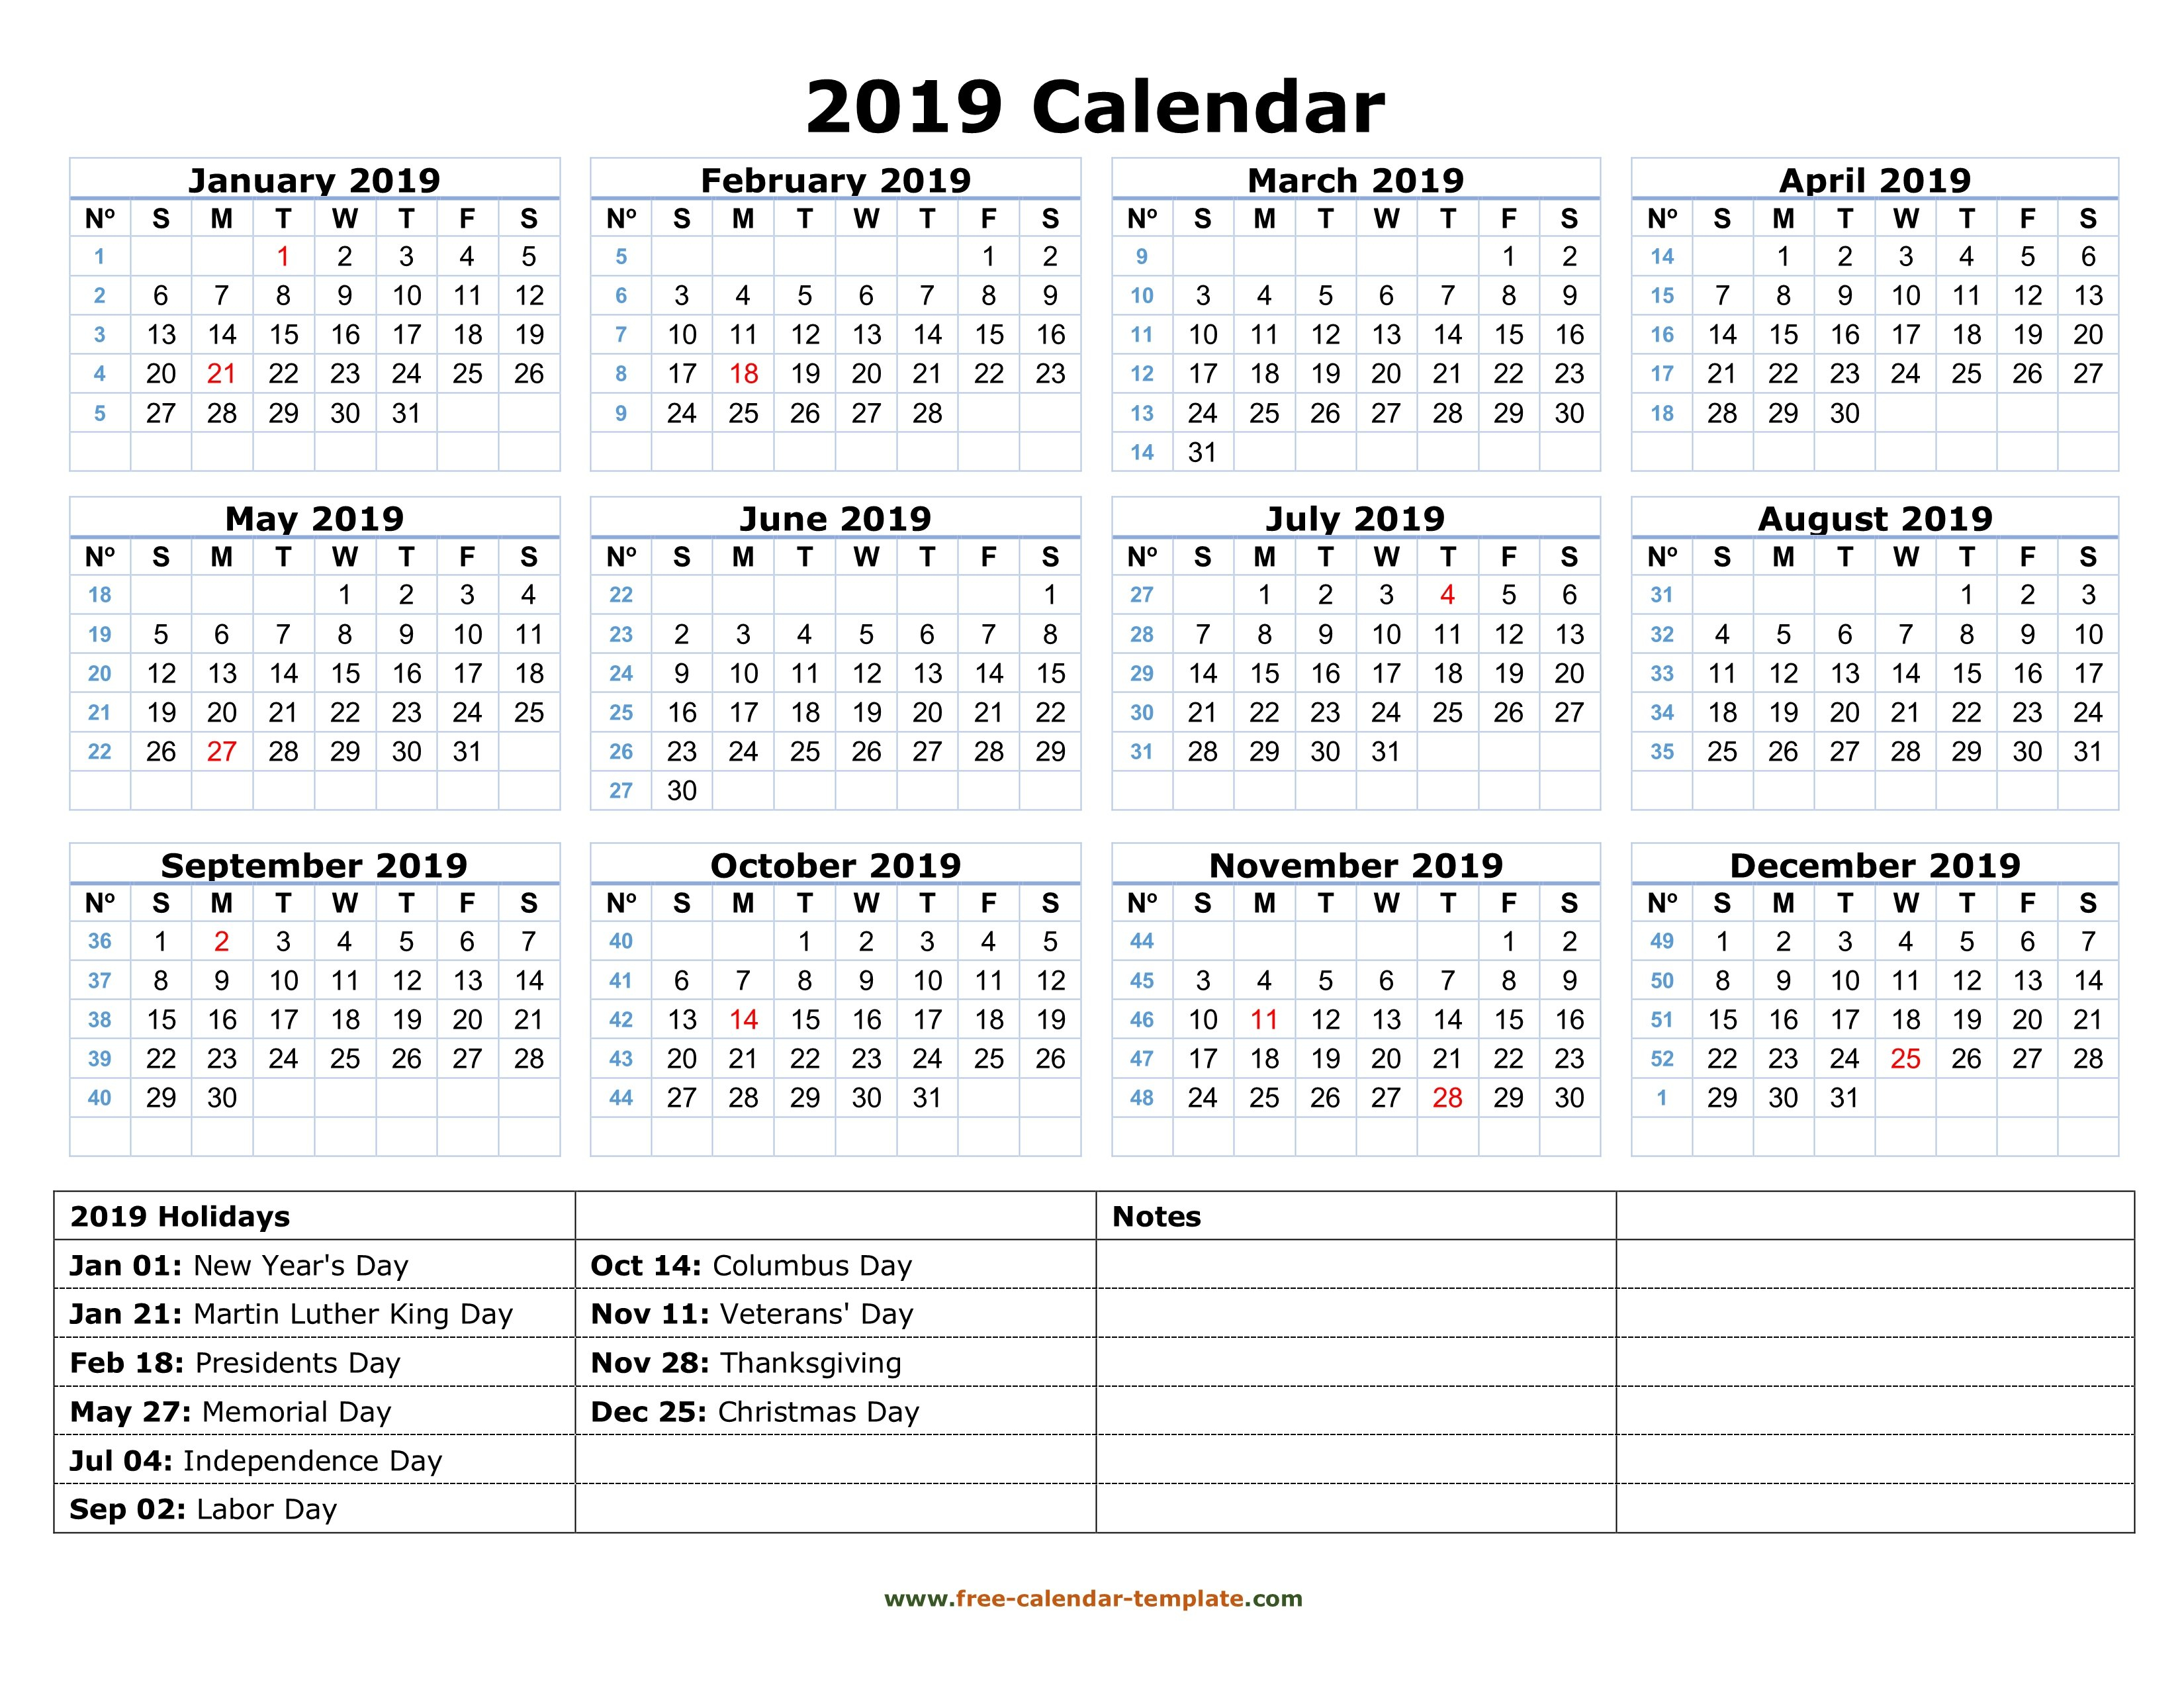 Printable Yearly Calendar 2019 With Us Holidays | Free Calendar Calendar 2019 Printable Holidays